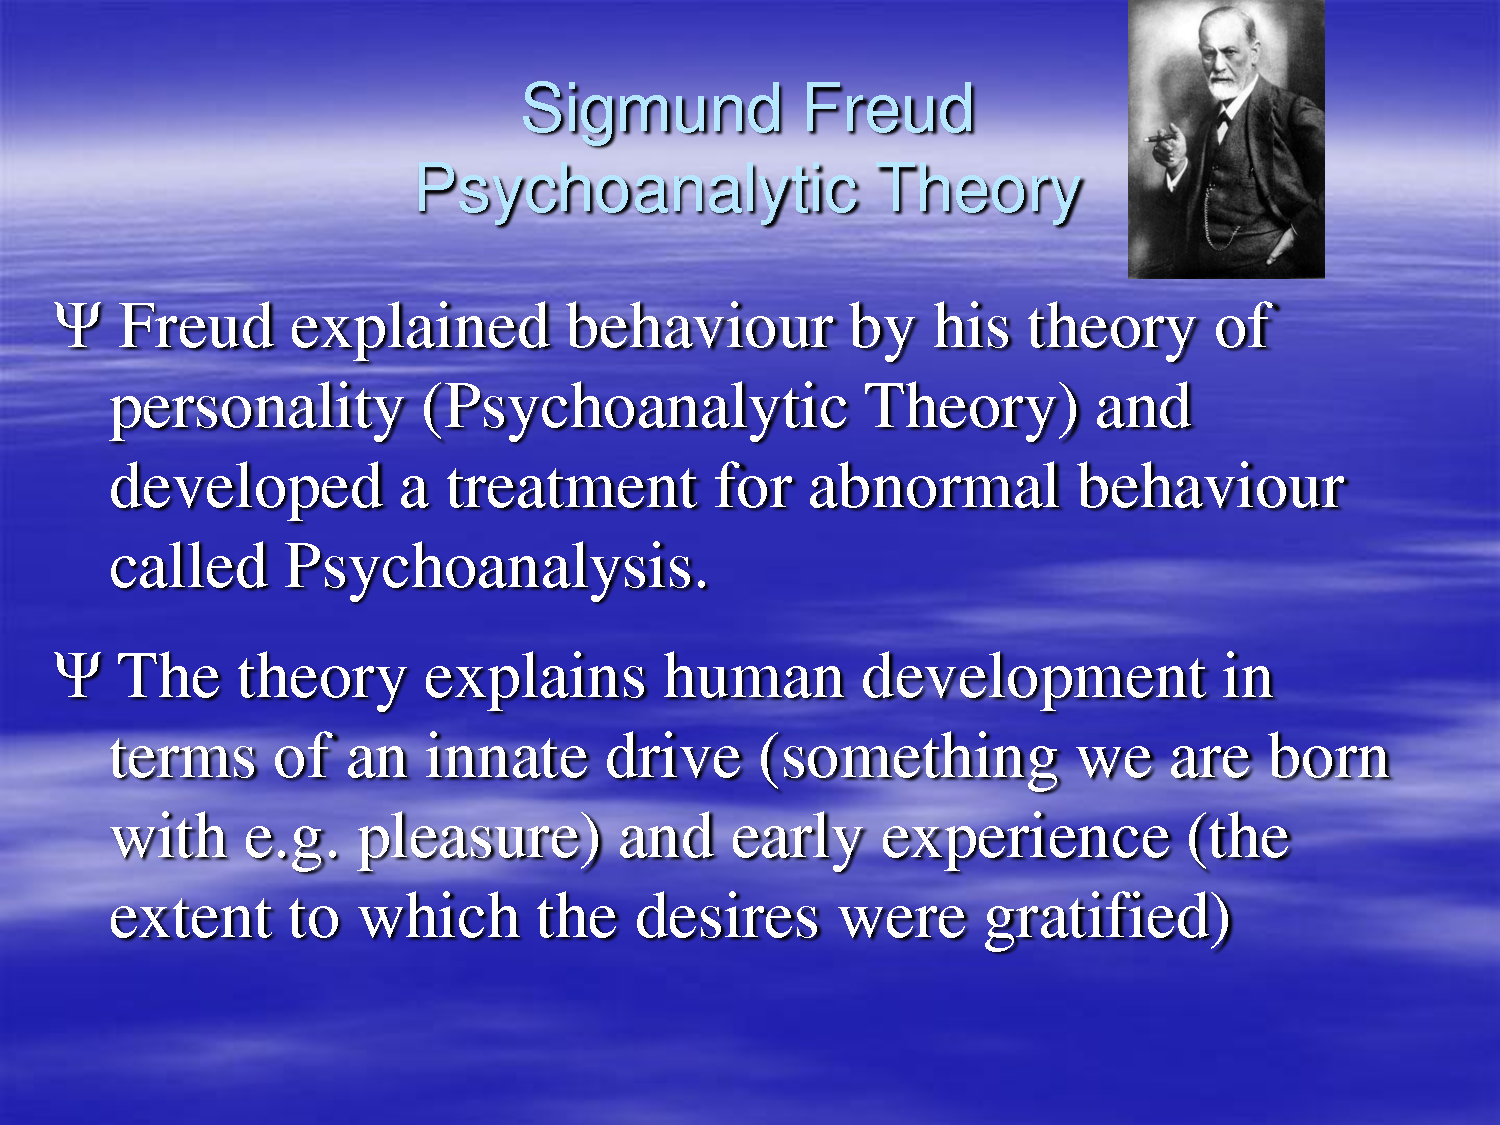 an analysis of the sigmuand freuds psycholoanalytic theory